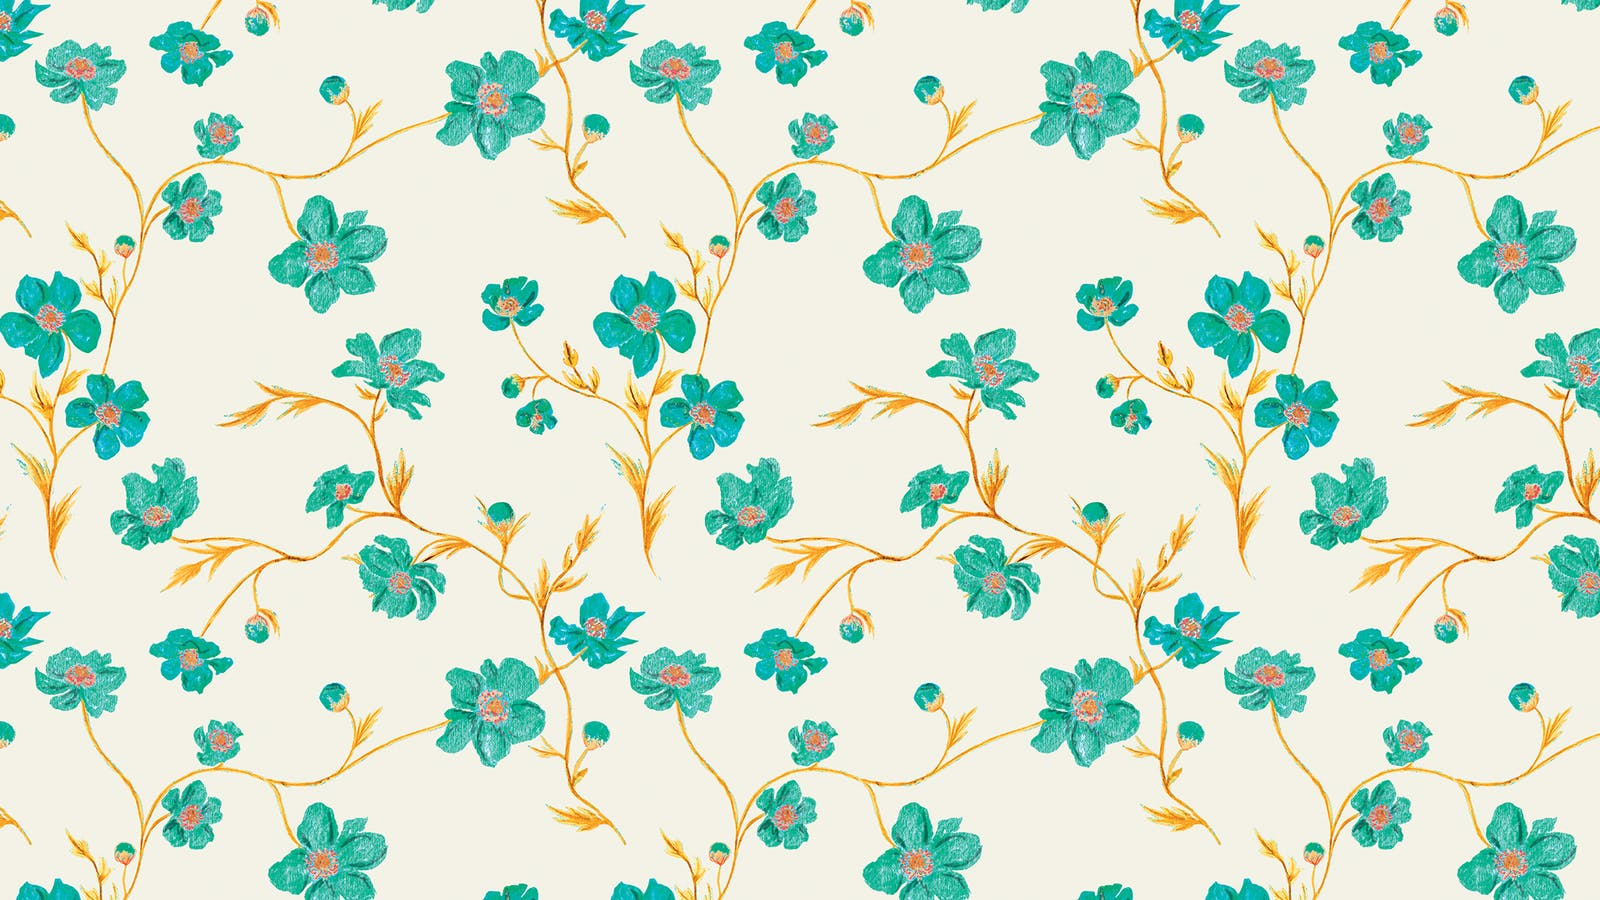 Lick x Jenna Hewitt Anemone 01 turquoise floral wallpaper